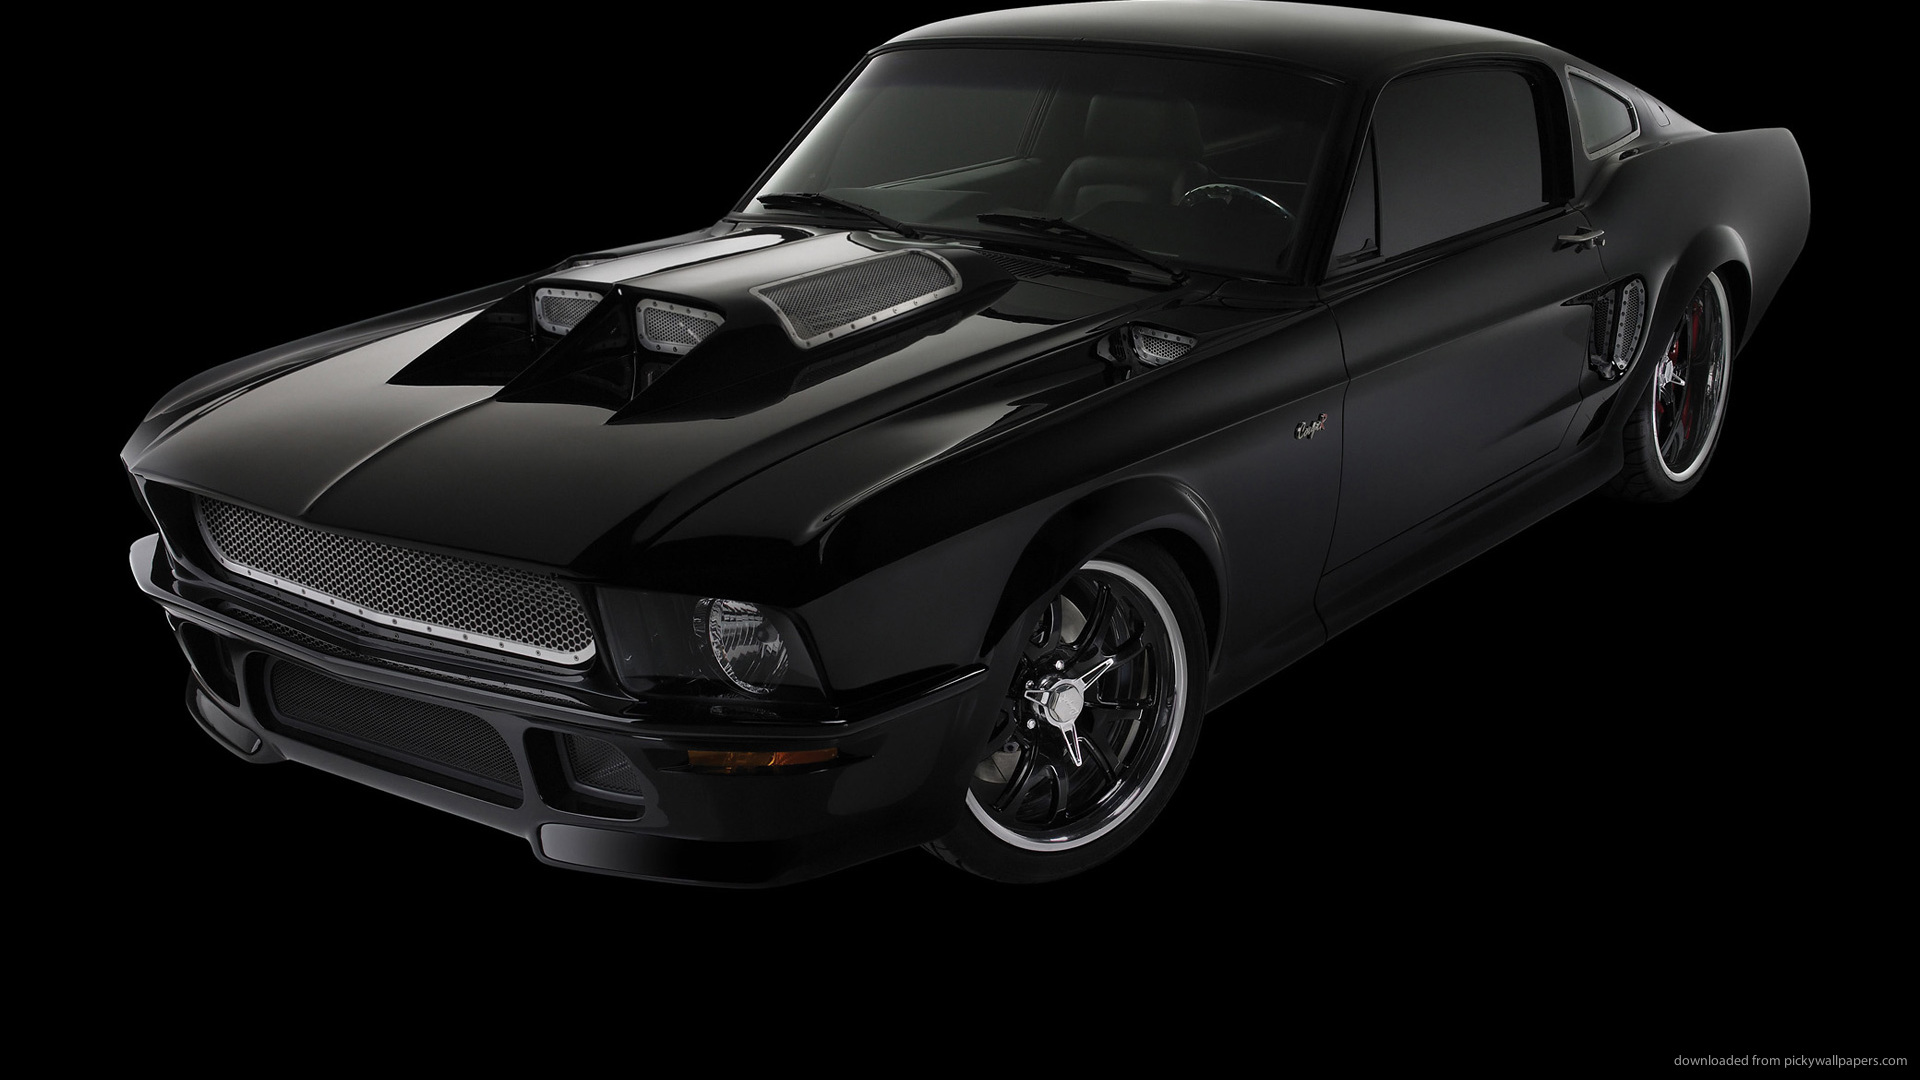 Black Ford Mustang Screensaver For Amazon Kindle 3 1920x1080